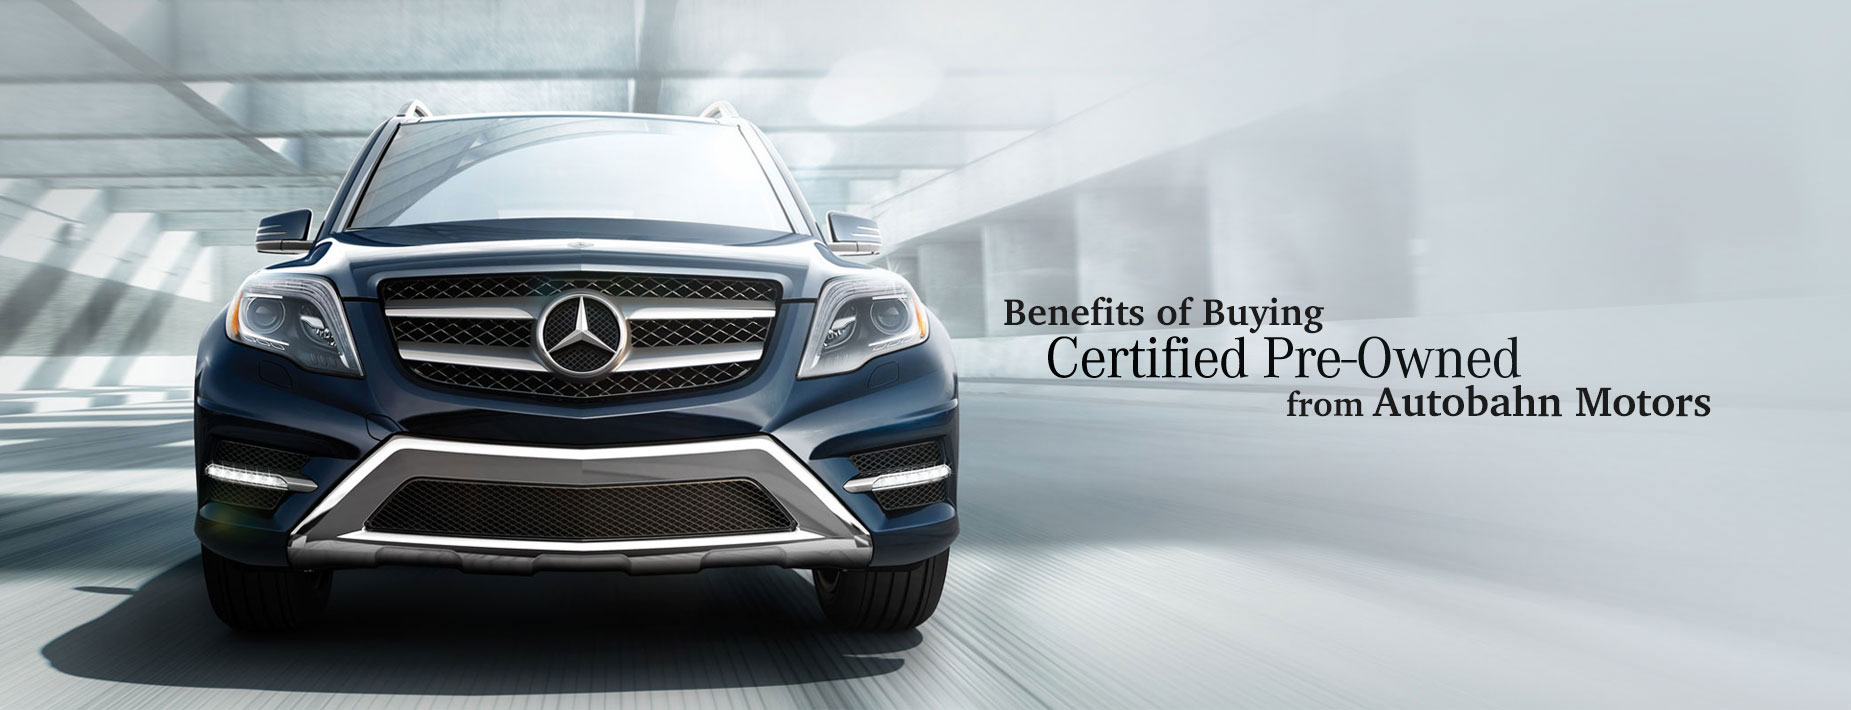 Autobahn motors new mercedes benz dealership in belmont for Mercedes benz certified warranty coverage